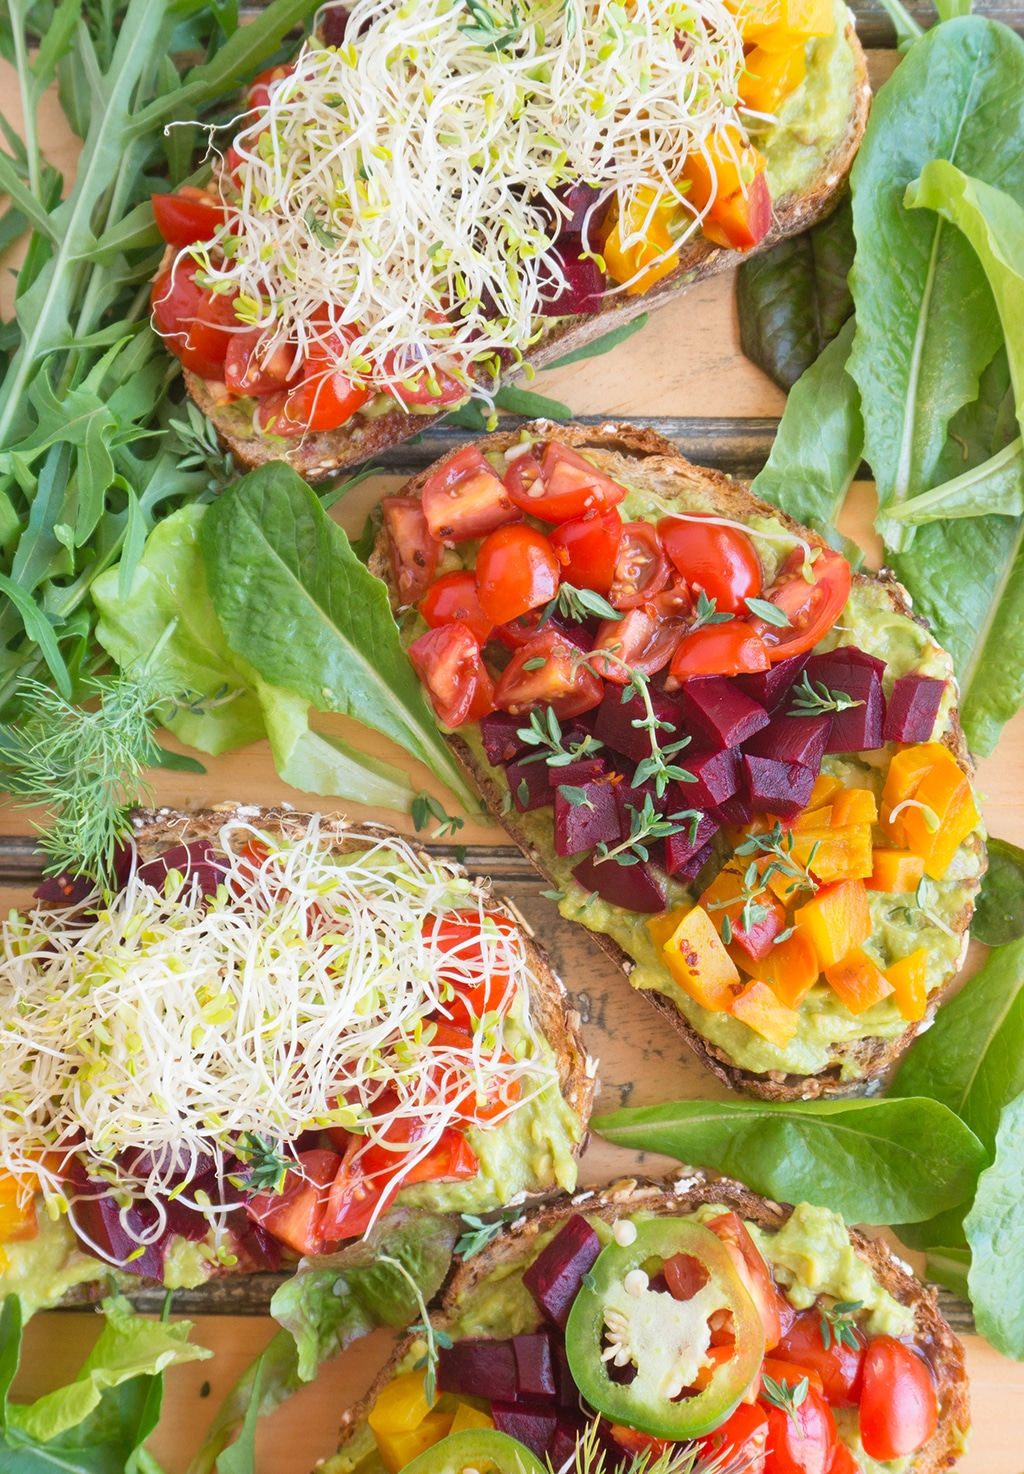 Beet & Avocado Open Faced Sandwiches